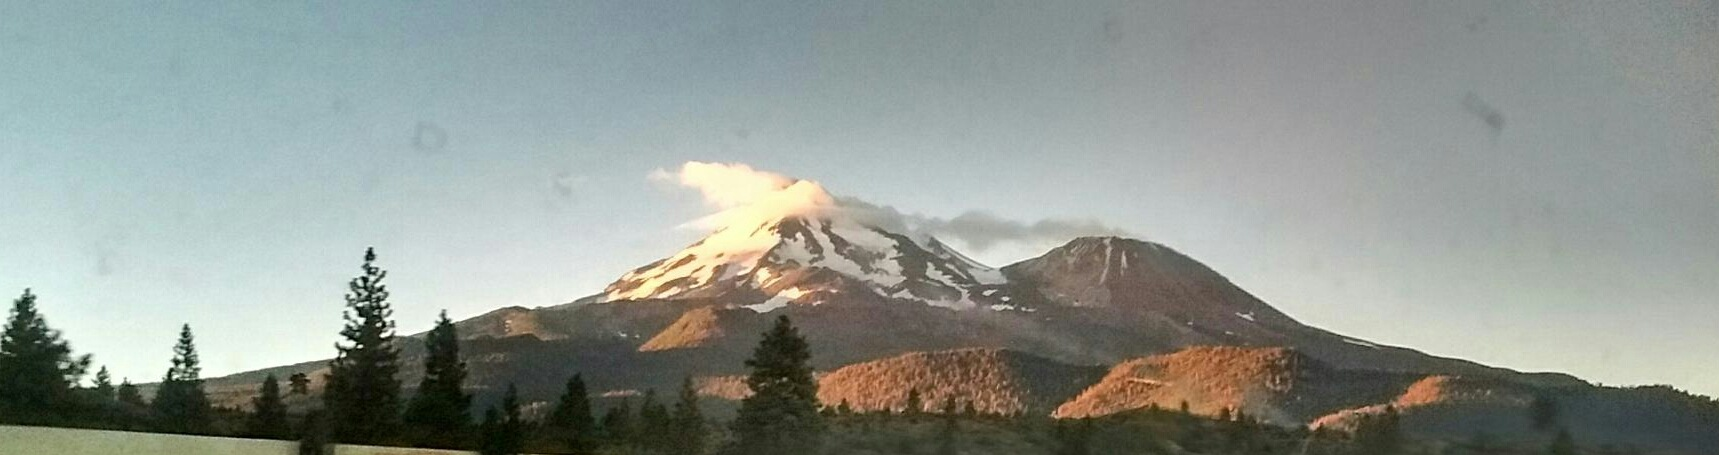 Mt. Shasta by marilyn wirtz